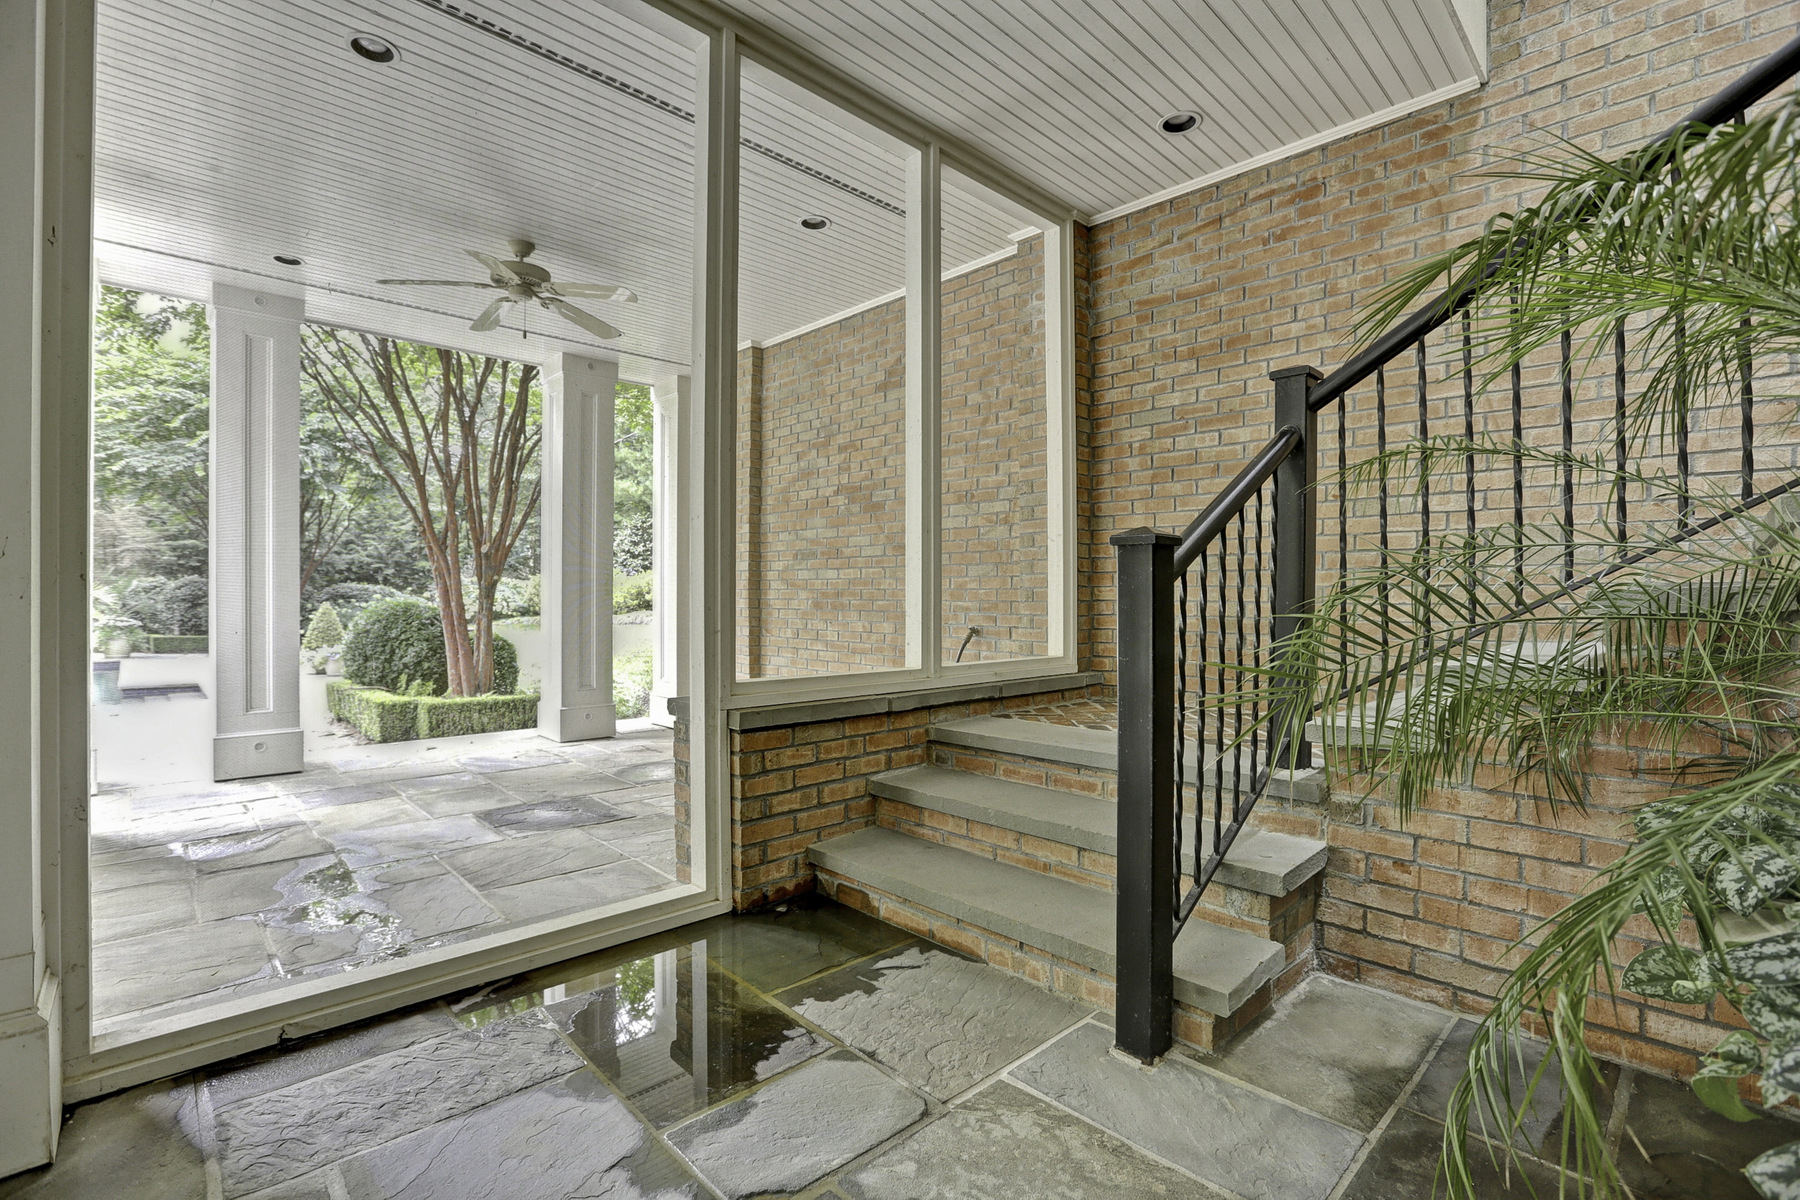 Additional photo for property listing at Renovated Brick Home In Sandy Springs With Pool And English Gardens 5660 Glen Errol Road Atlanta, Georgia 30327 Stati Uniti